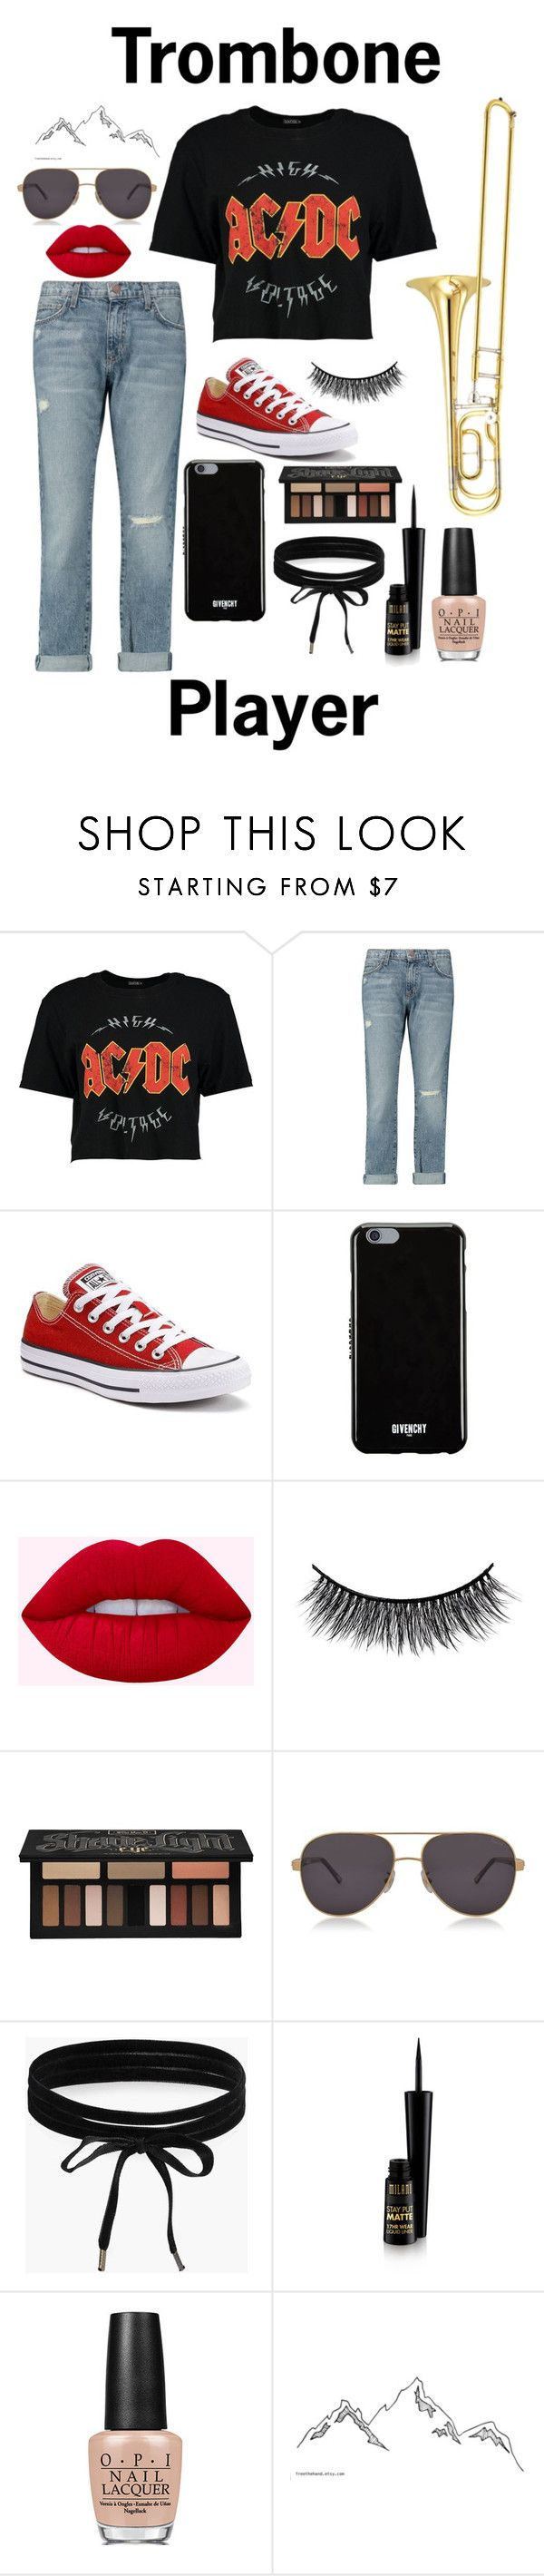 """""""Trombone Player"""" by chloebinford on Polyvore featuring Boohoo, Yamaha, Current/Elliott, Converse, Givenchy, Battington, Kat Von D, Chopard and OPI"""